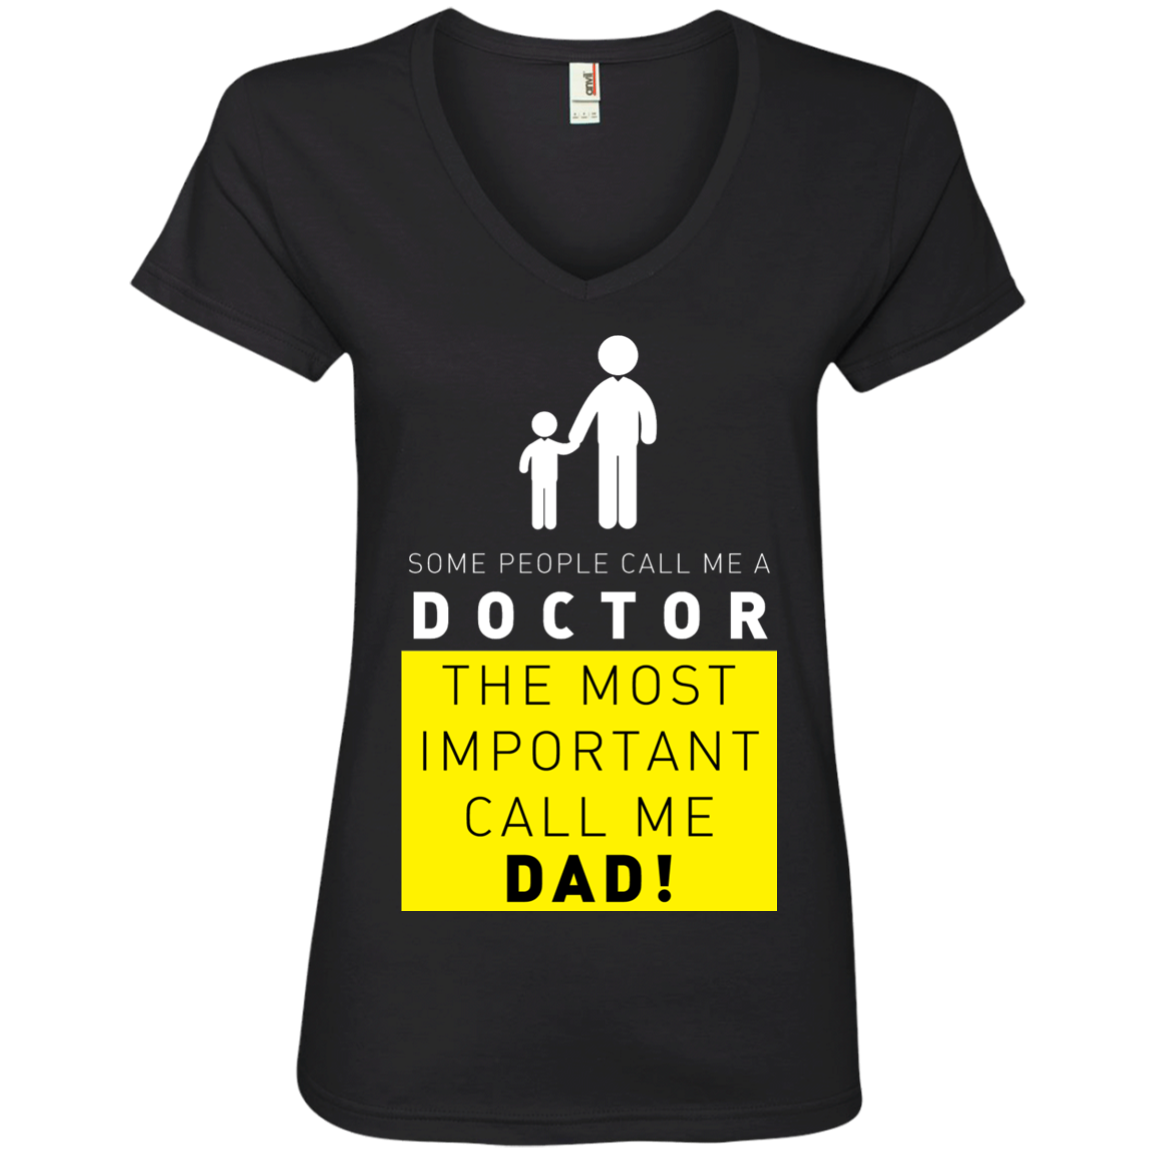 Some People Call Me a Doctor, The Most Important Call me Dad Ladies' V-Neck T-Shirt